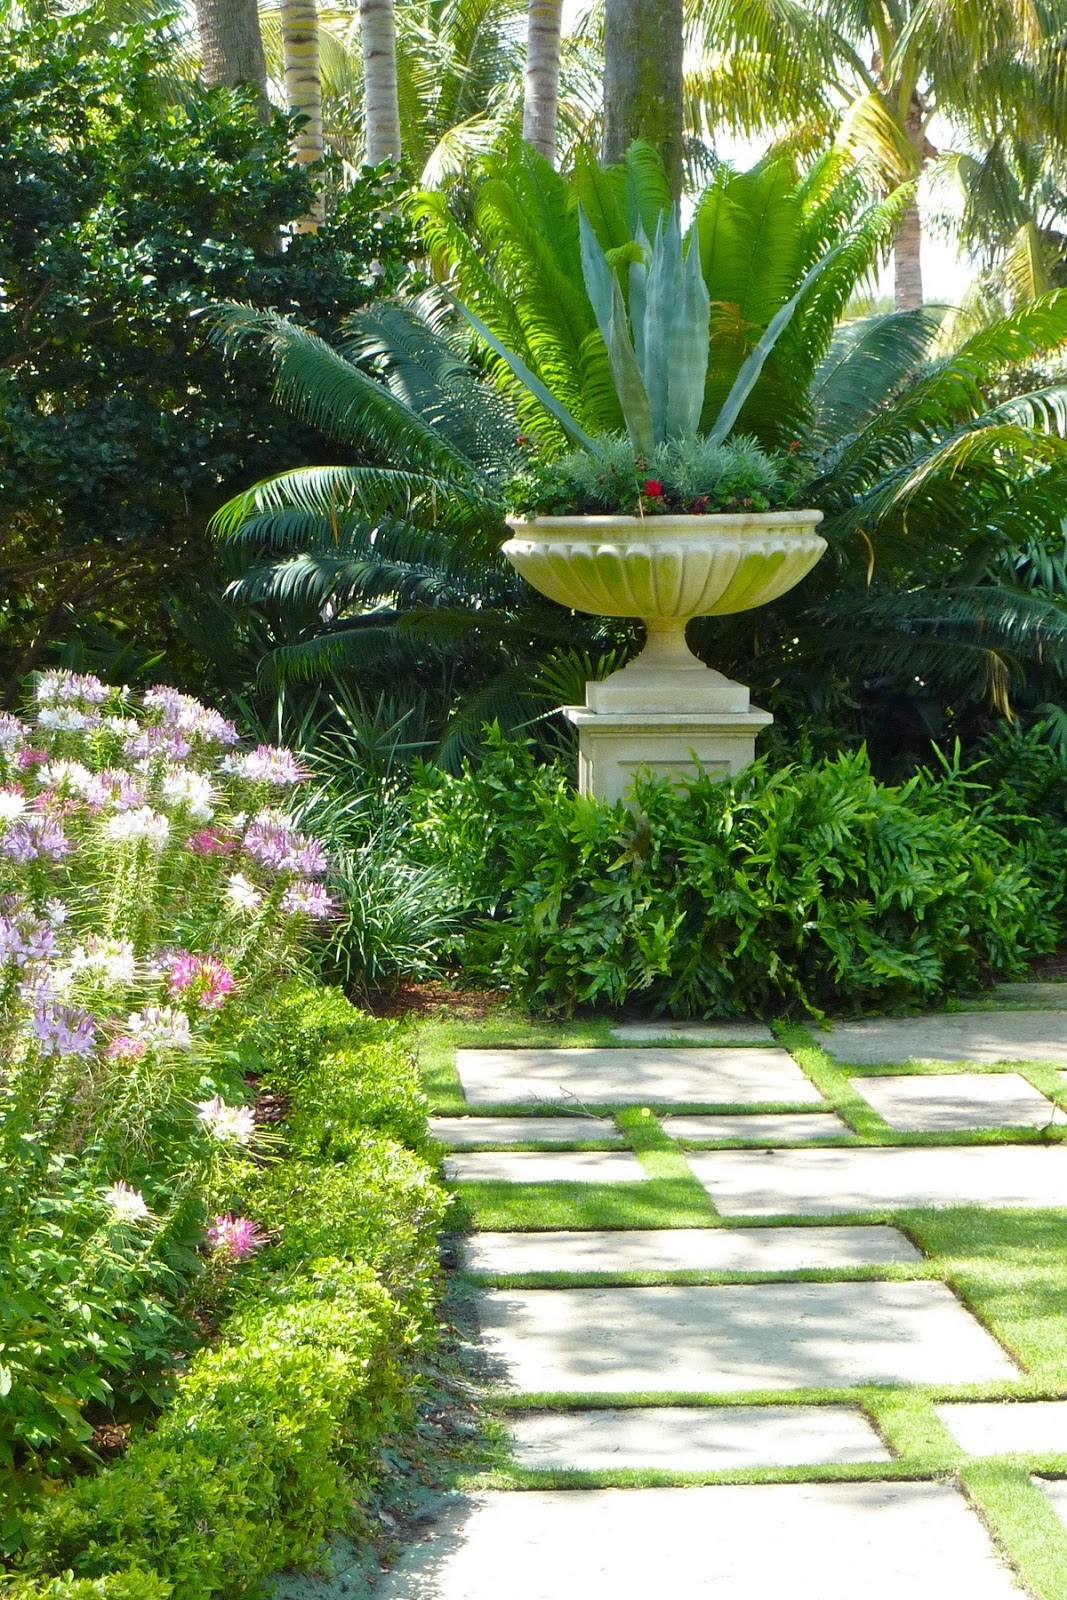 The Designer's Muse: Urning Dividends: Beautifying Gardens